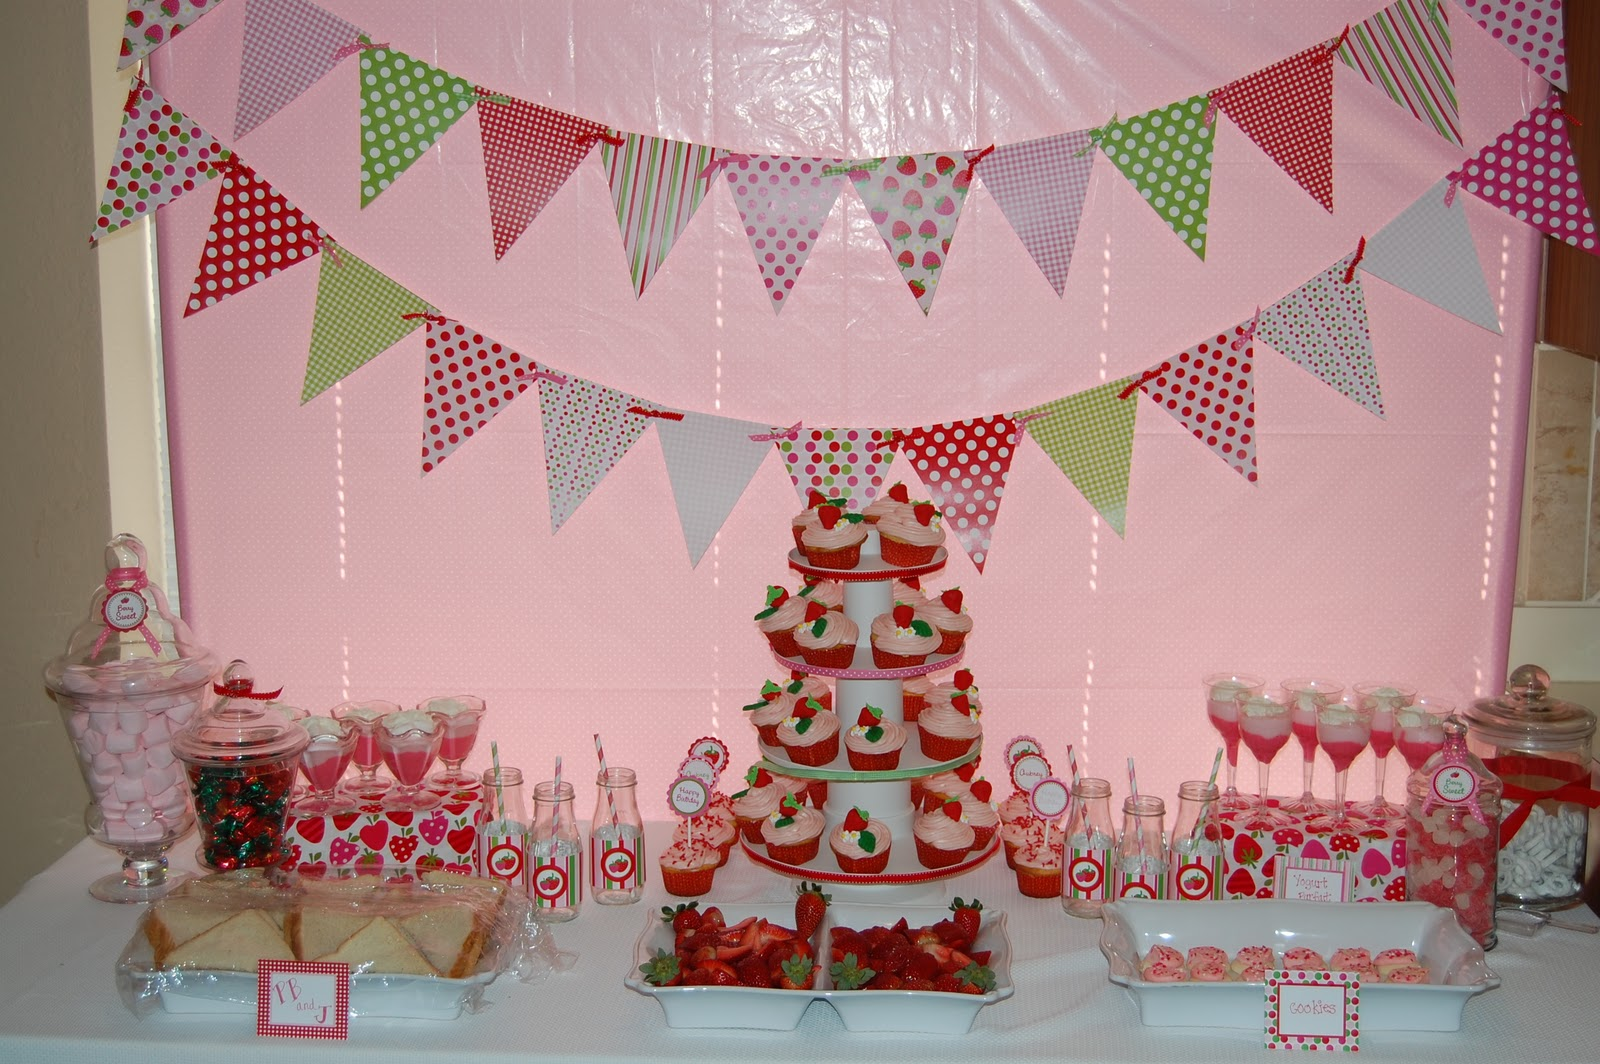 & Strawberry Shortcake Party - Giggles Galore